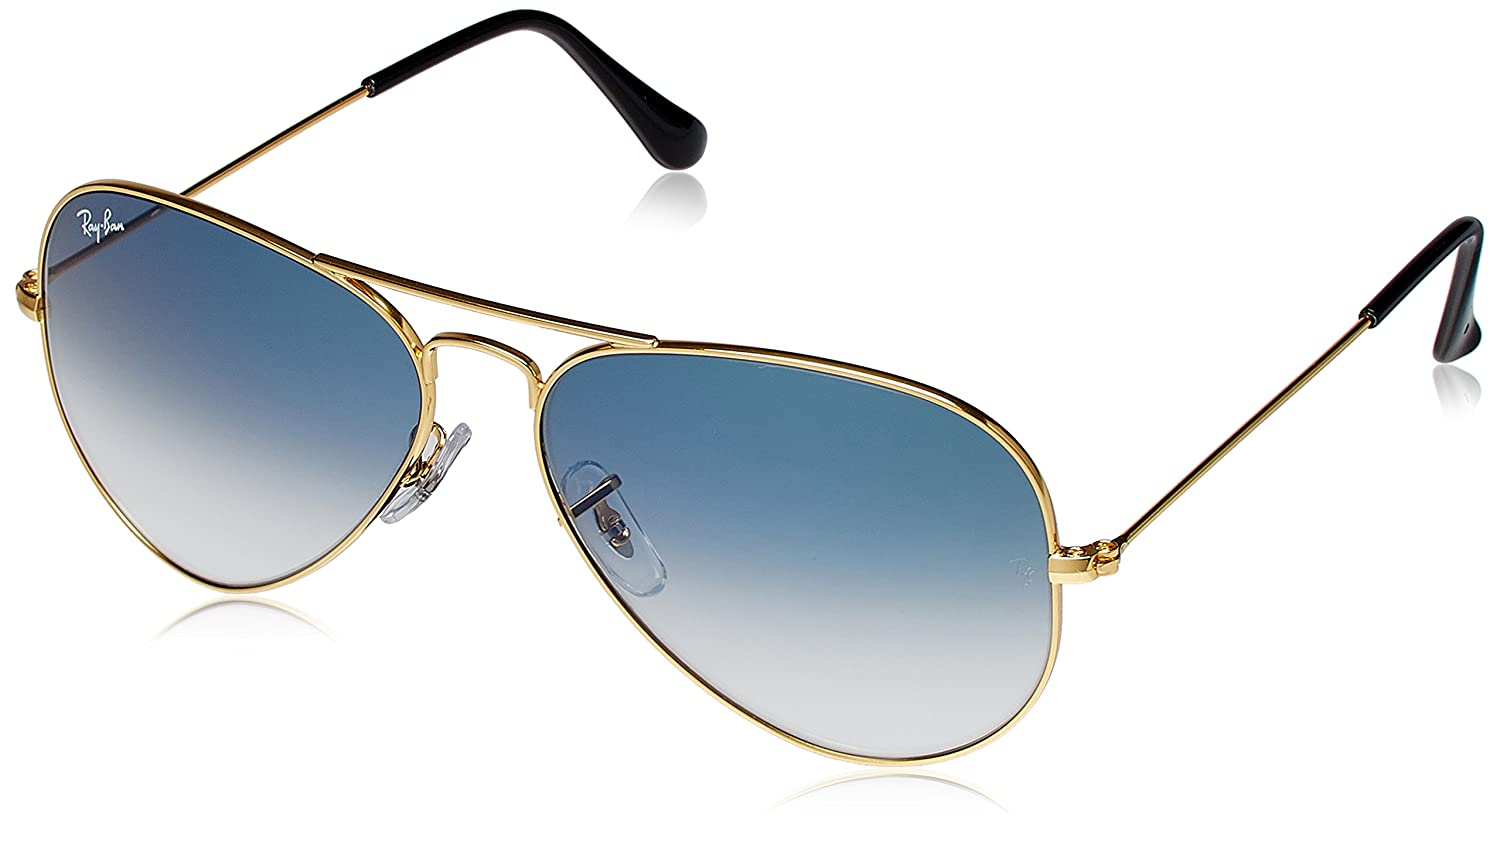 Ray ban sunglasses with price - Ray Ban Uv Protection Aviator Men S Sunglasses 0rb3025i001 3f58 58 Millimeters Crystal White Grad Blue Amazon In Clothing Accessories